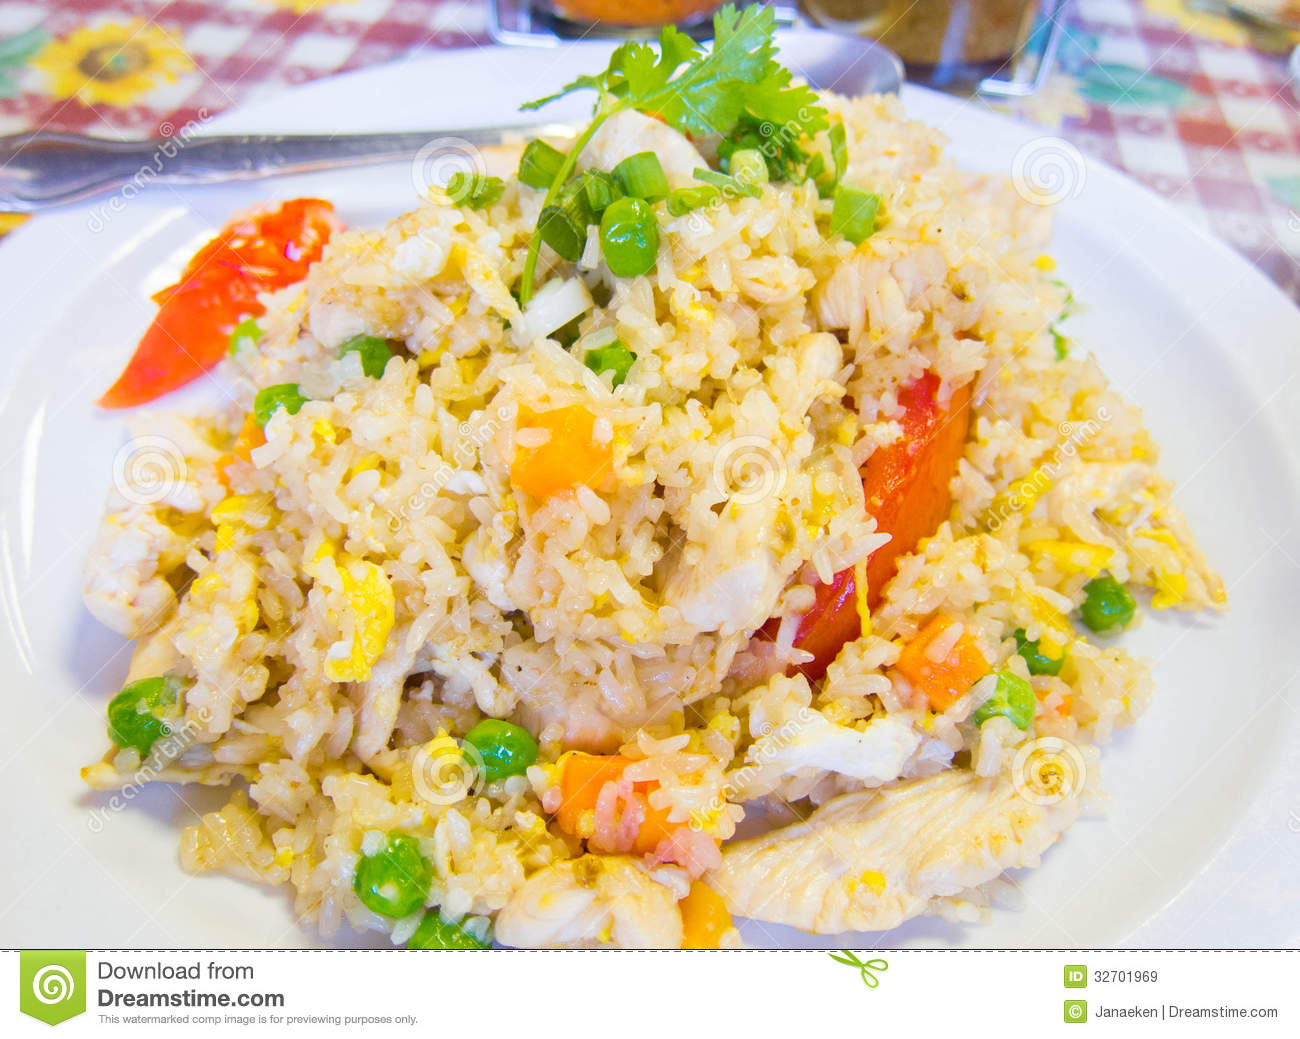 Chicken fried rice stock image. Image of gastronomy, white ...